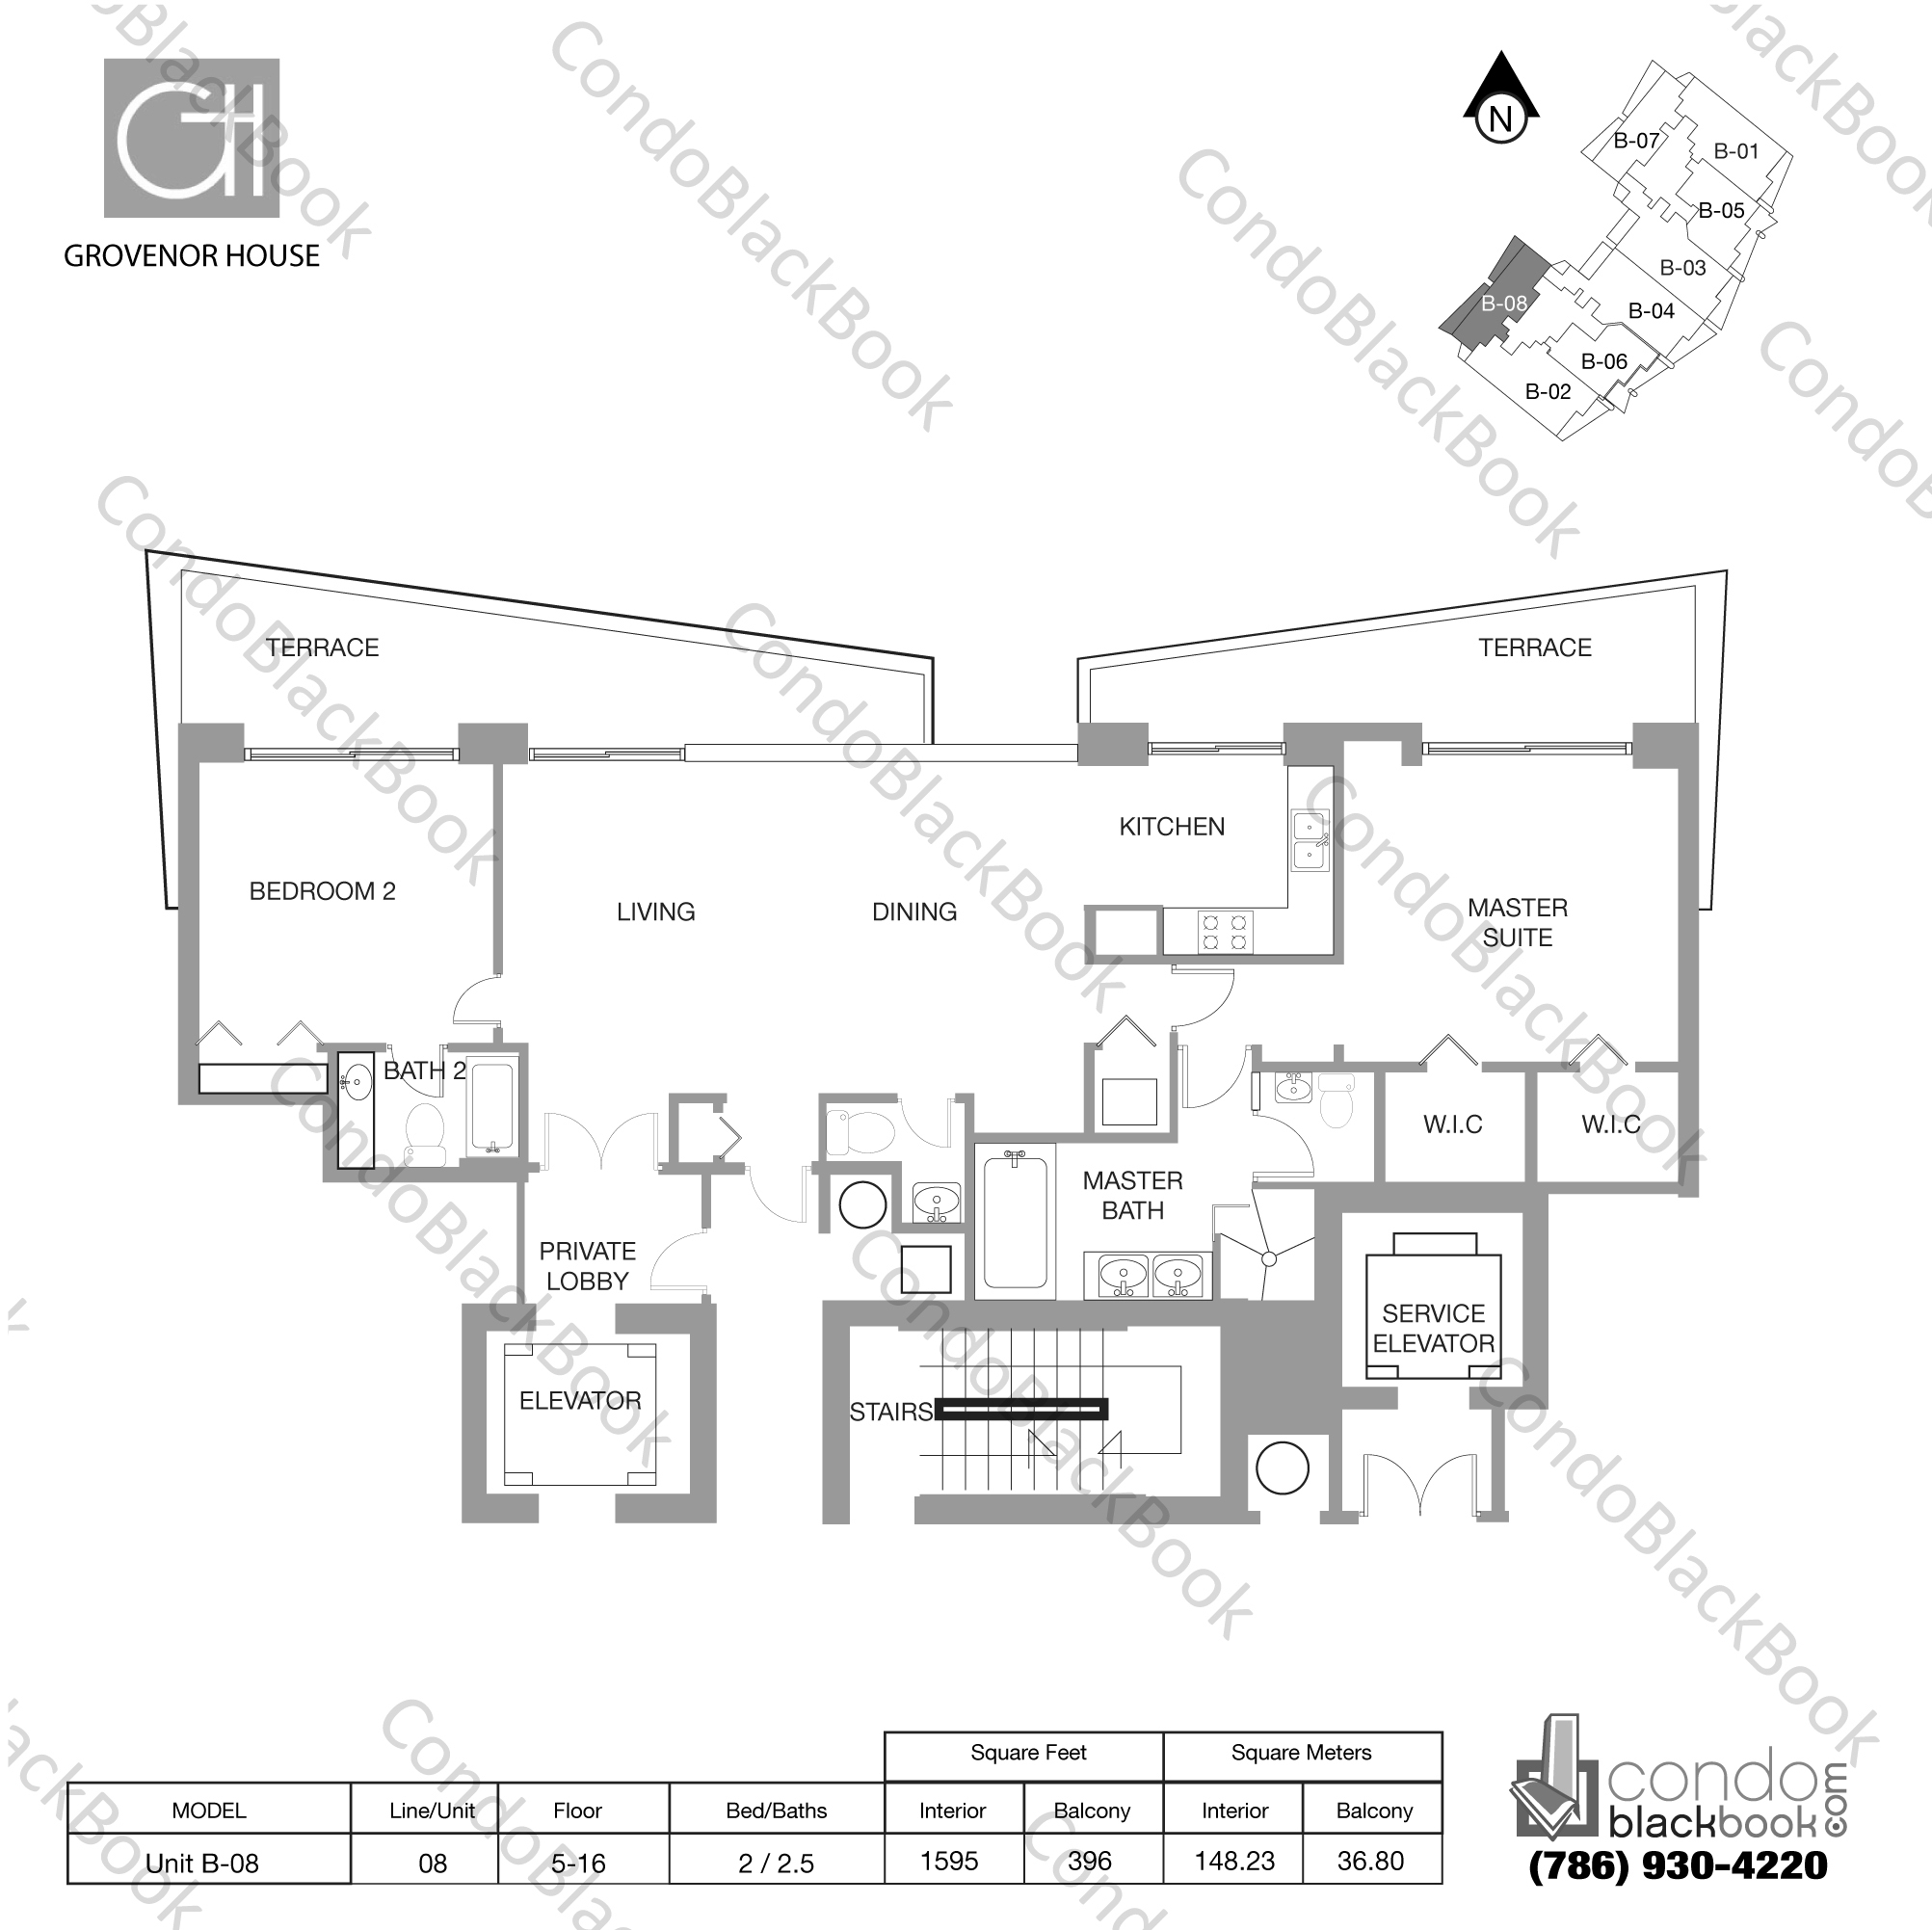 Grovenor house unit 1208 condo for sale in coconut grove for Miami mansion floor plans